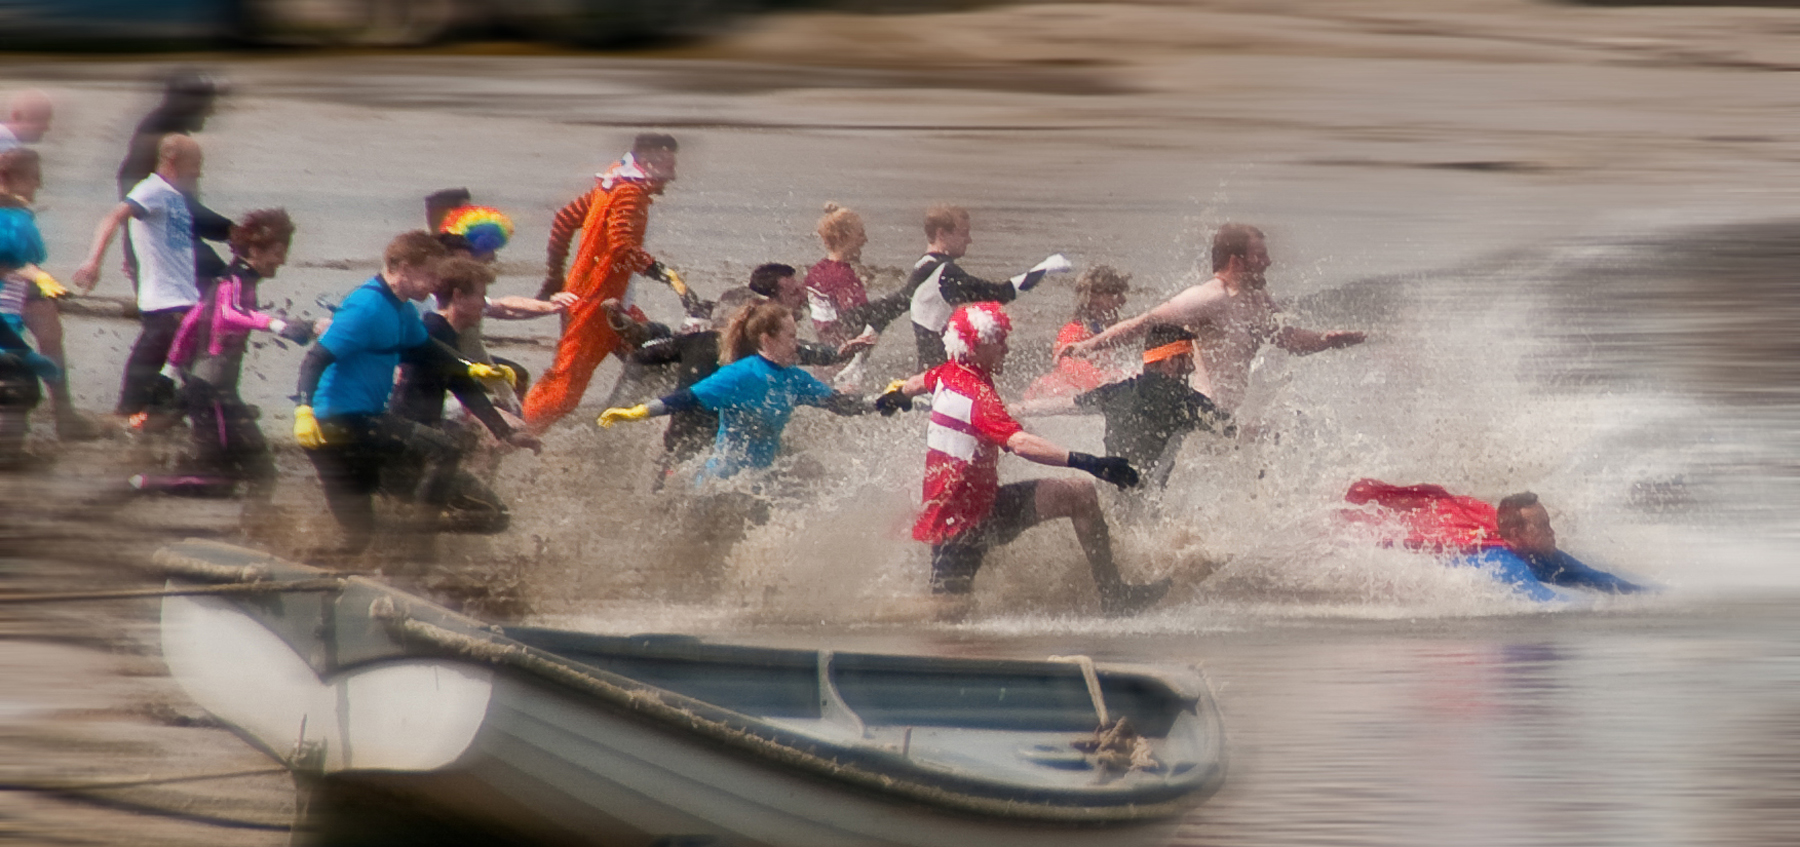 maldon mud race days out in essex charity